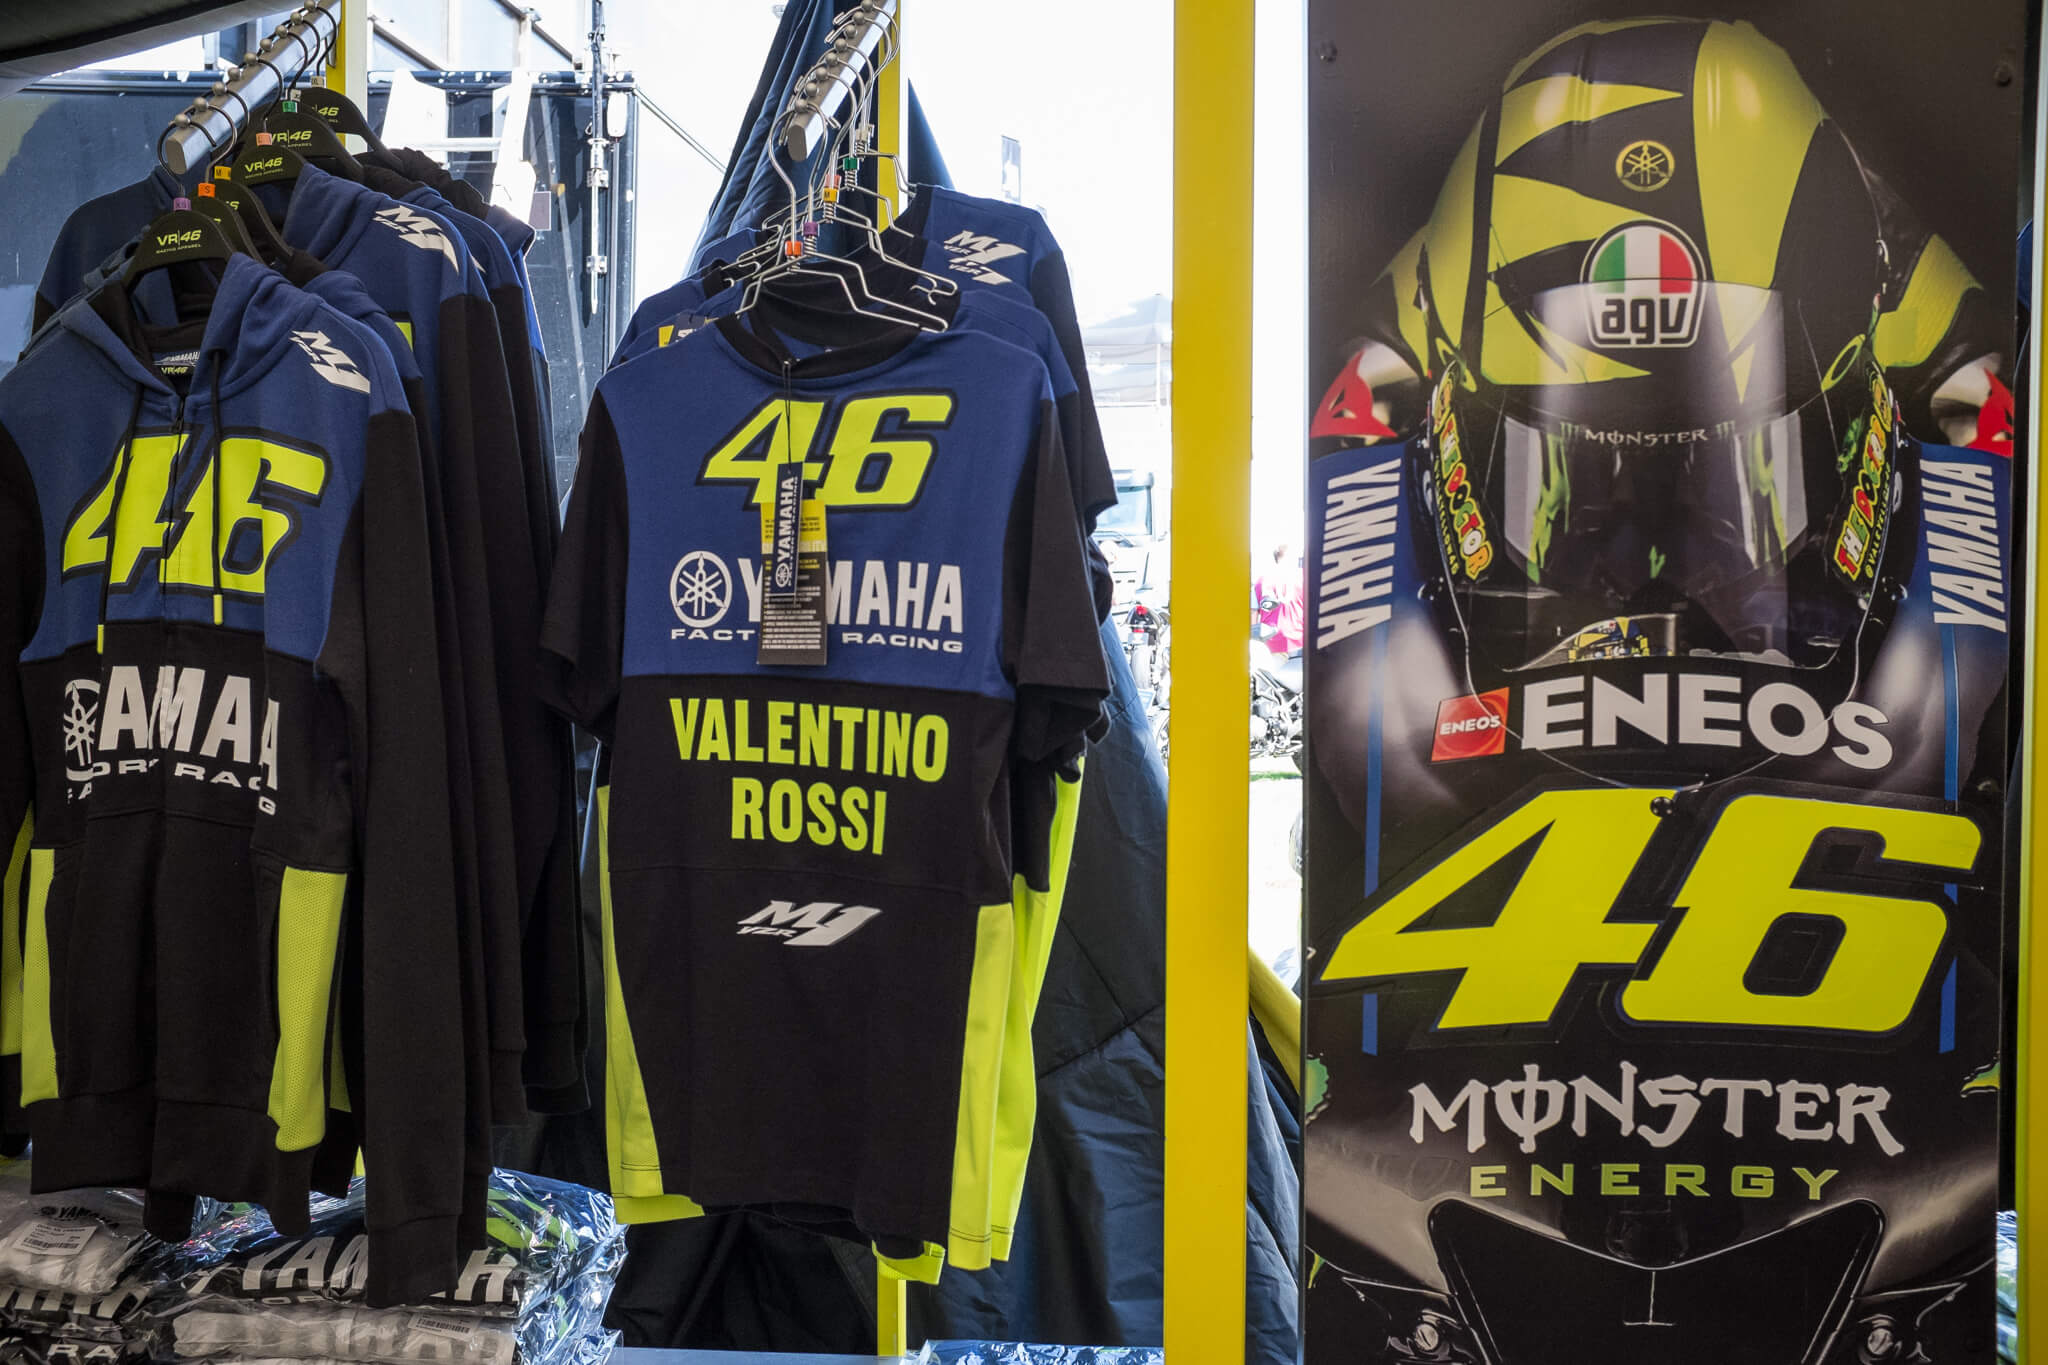 The most popular merchandise: nr. 46 Valentino Rossi